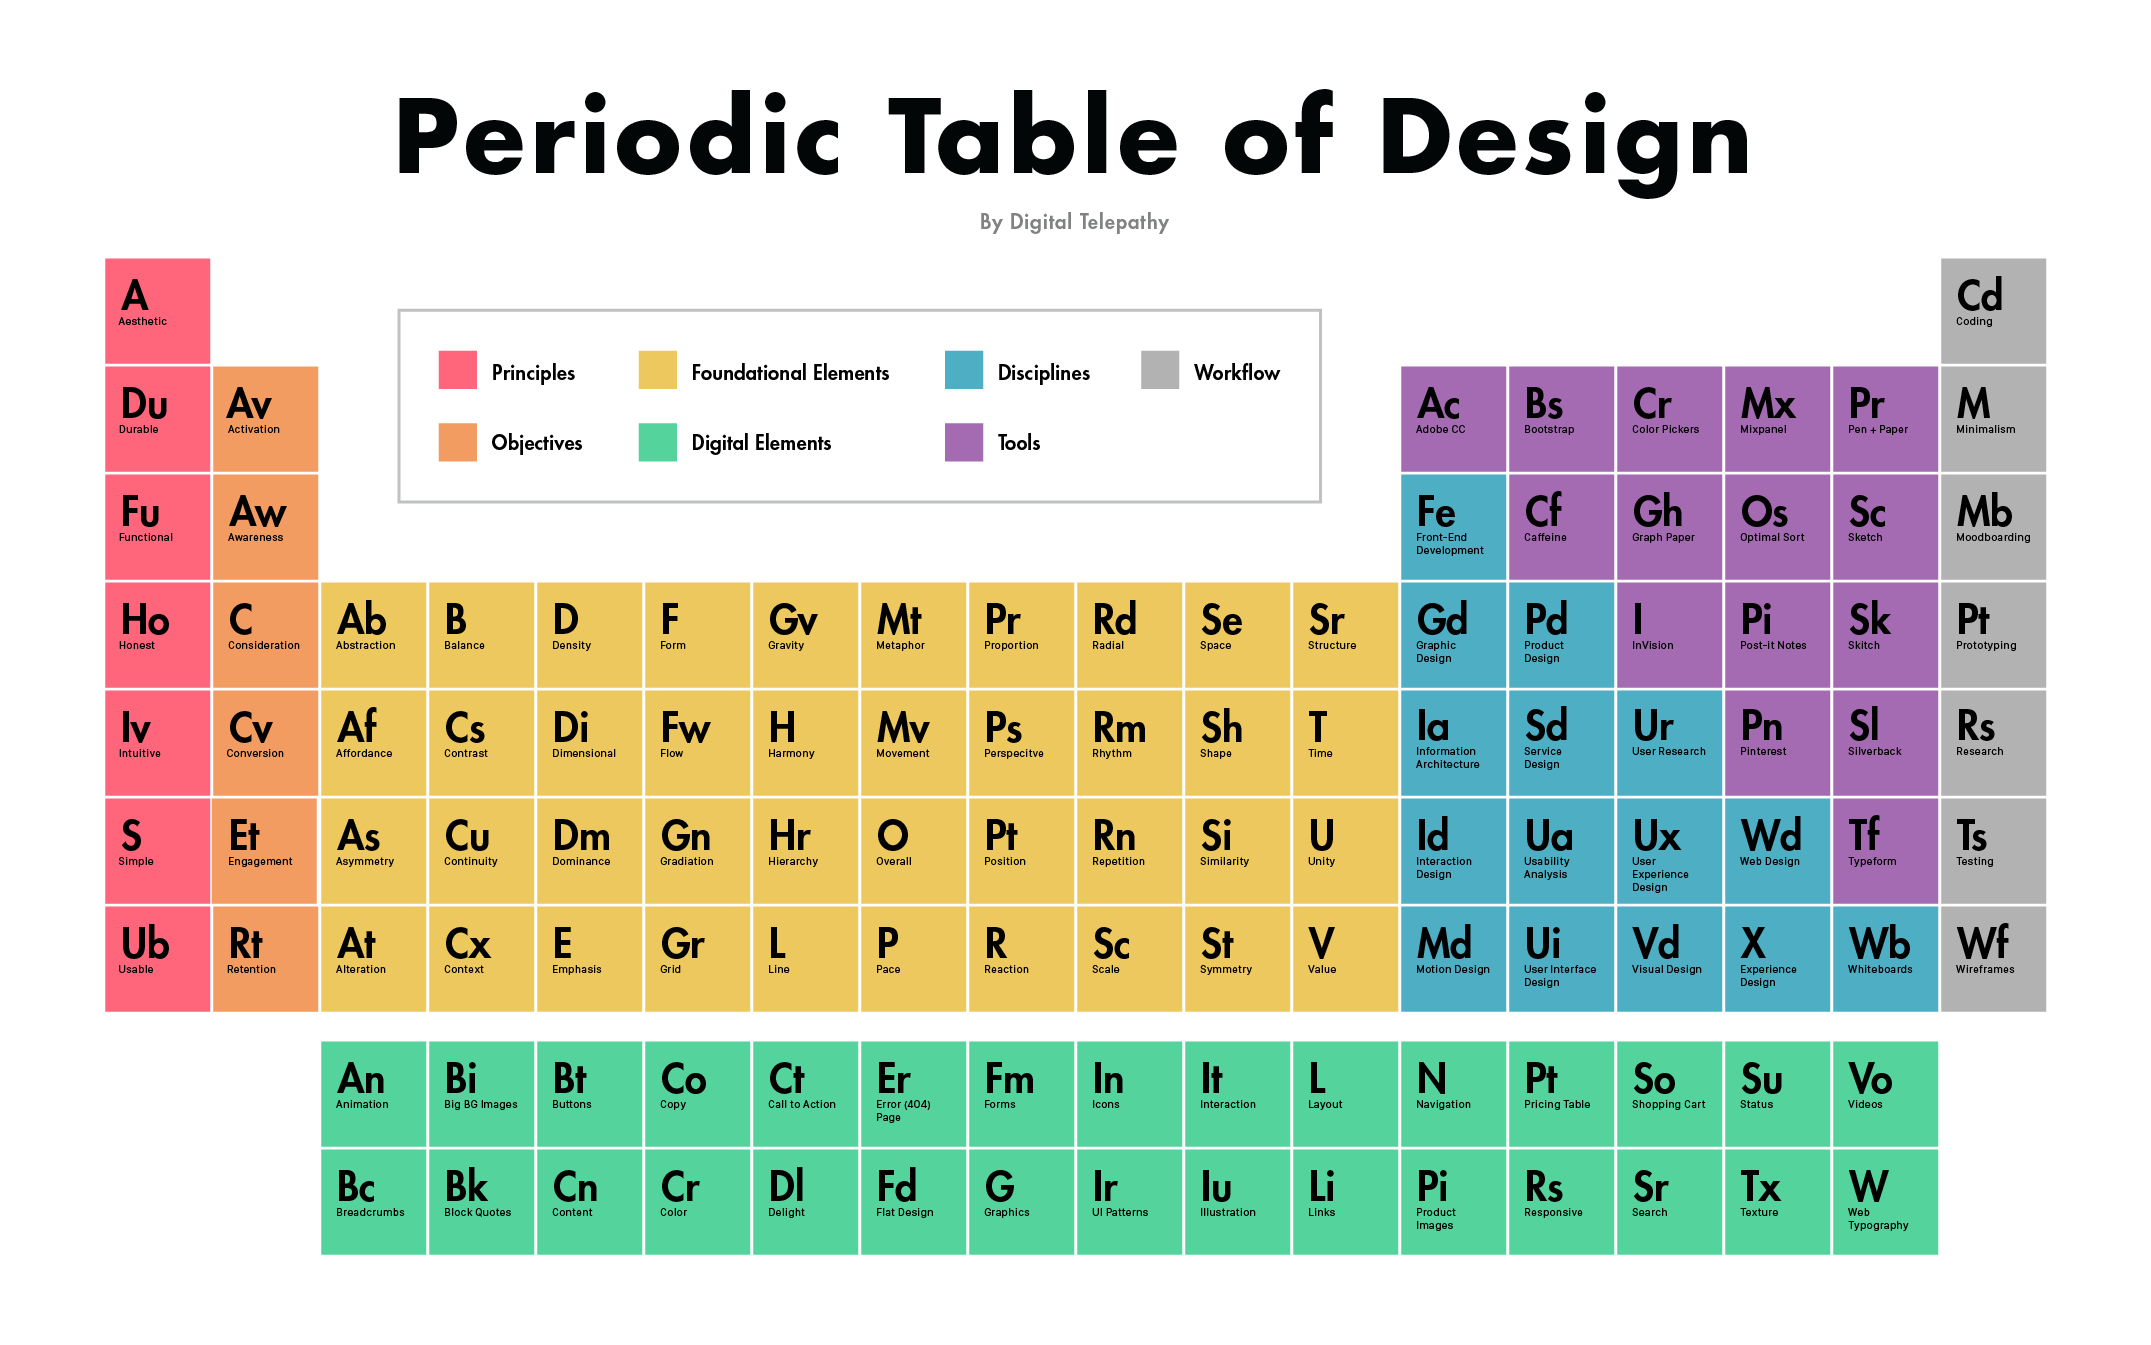 Periodic table of design home koolinus for What is table in html